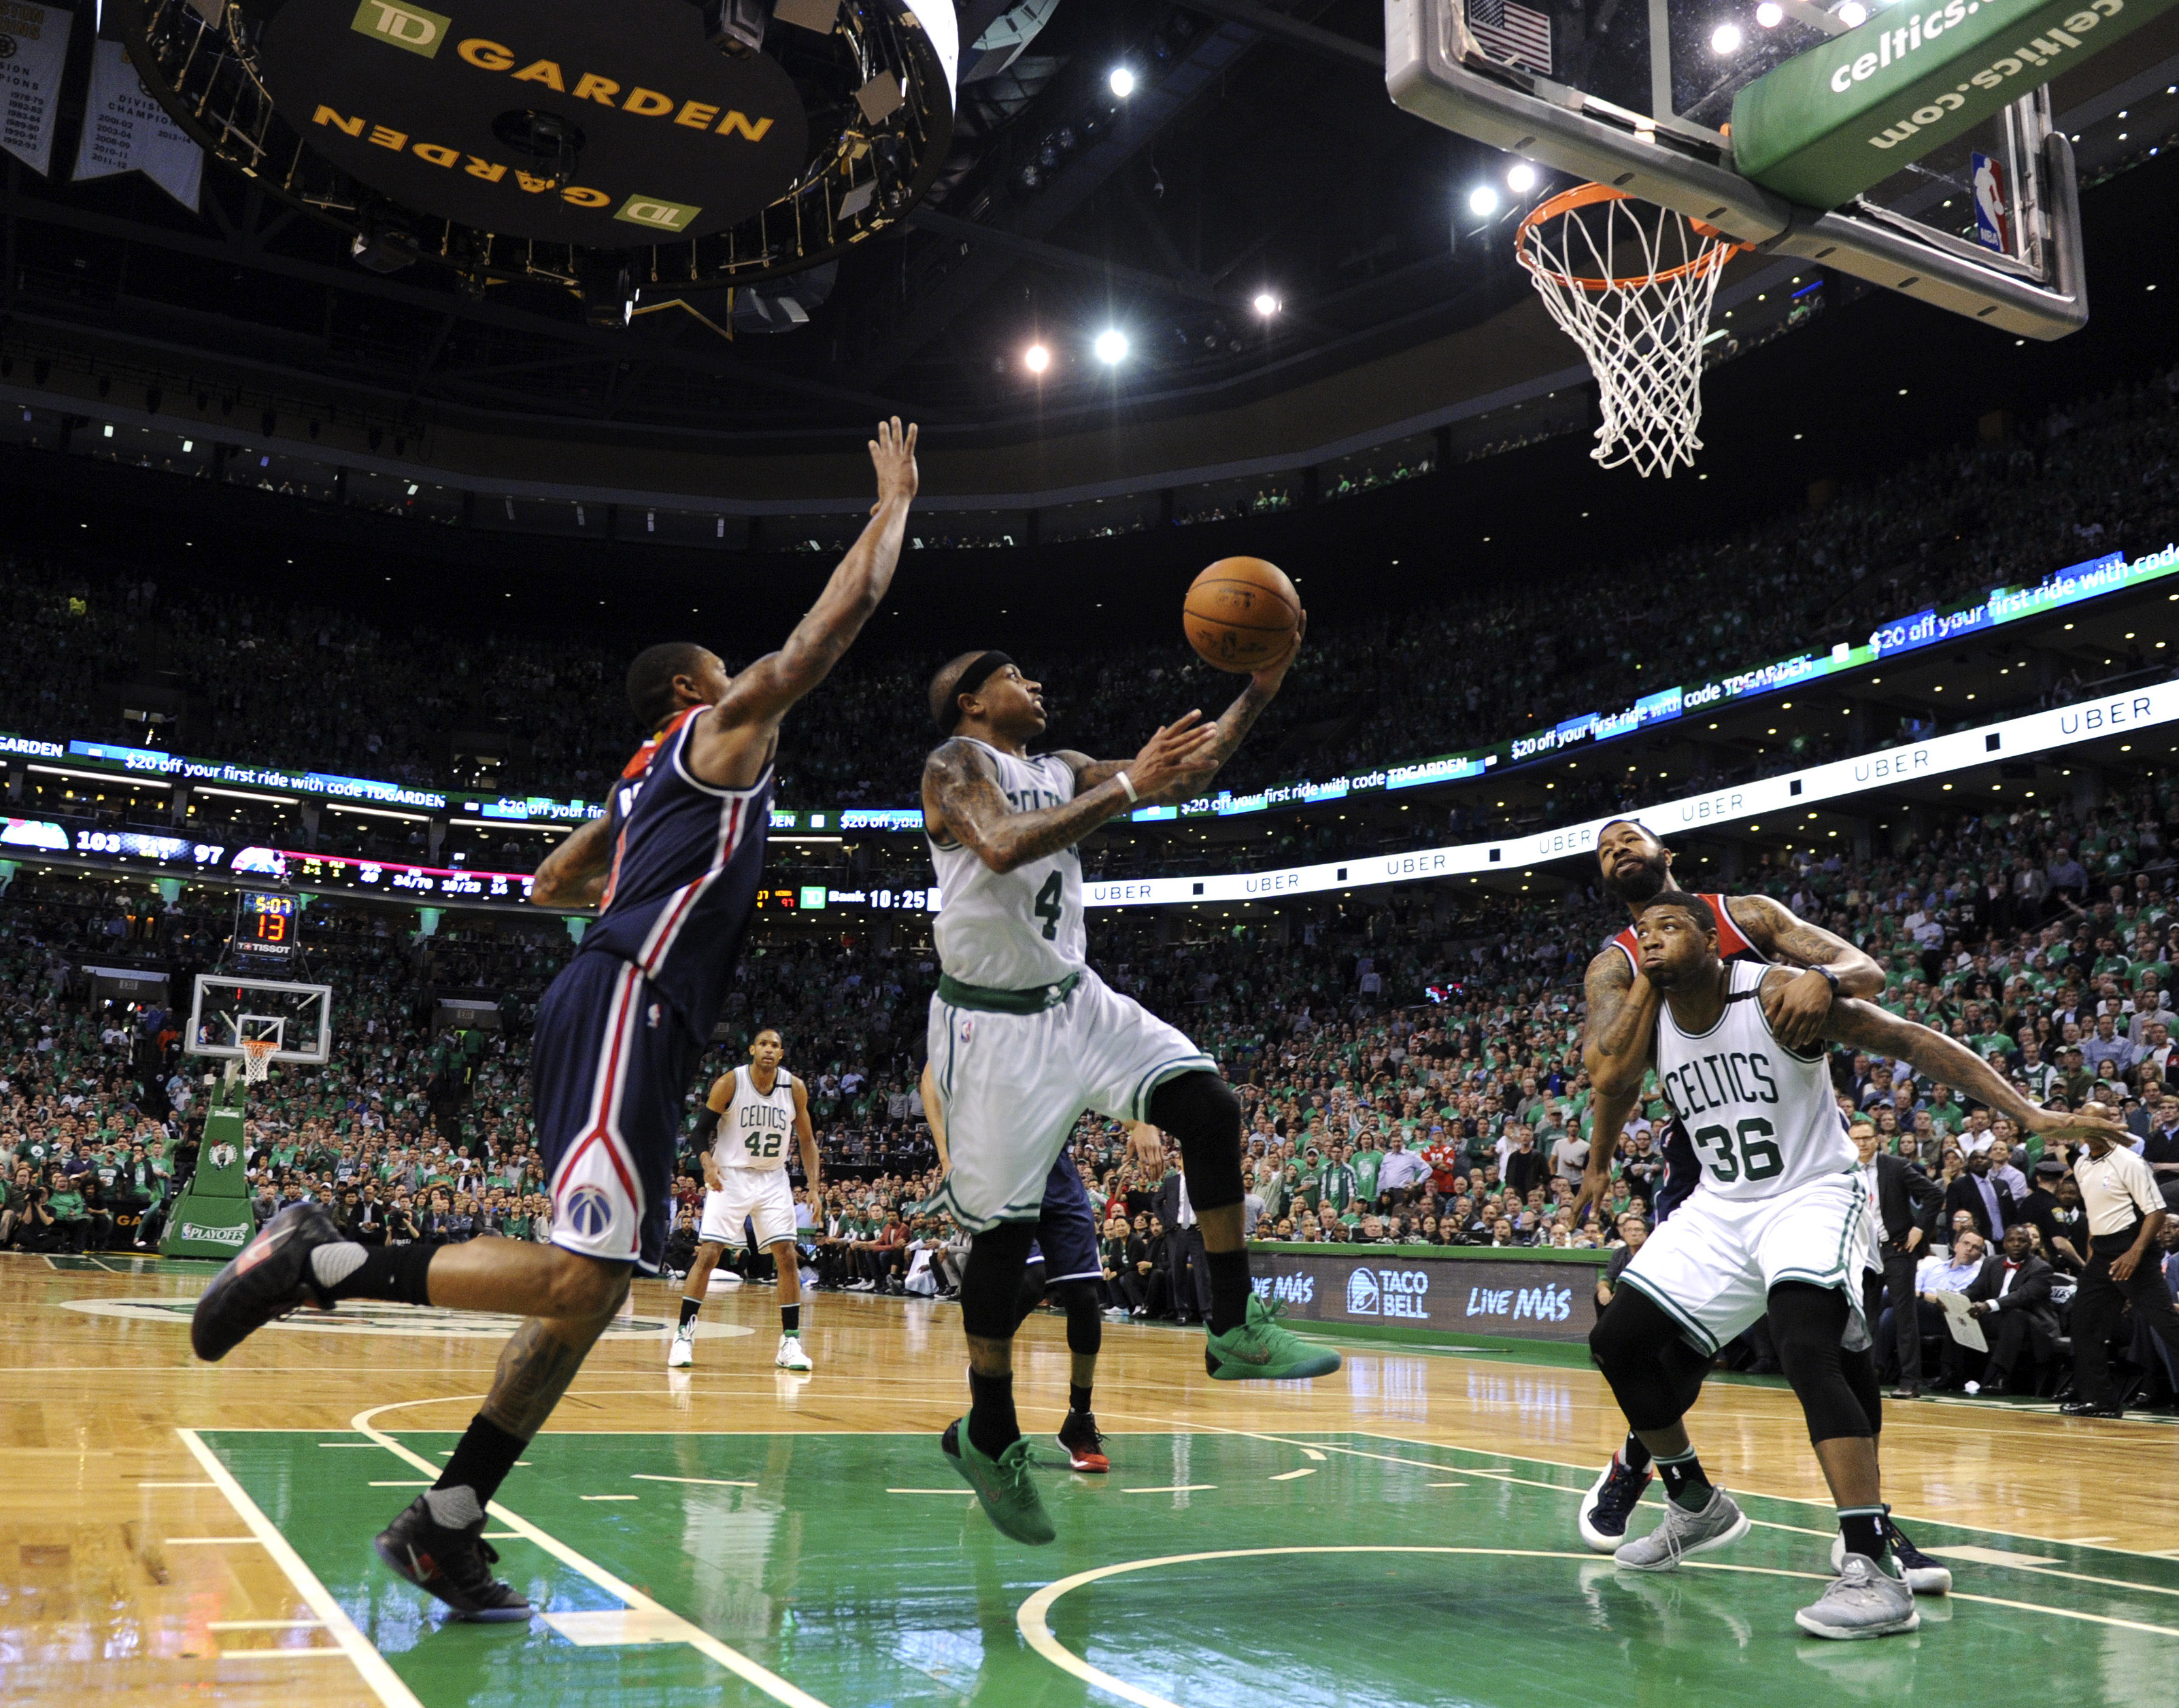 10059598-nba-playoffs-washington-wizards-at-boston-celtics